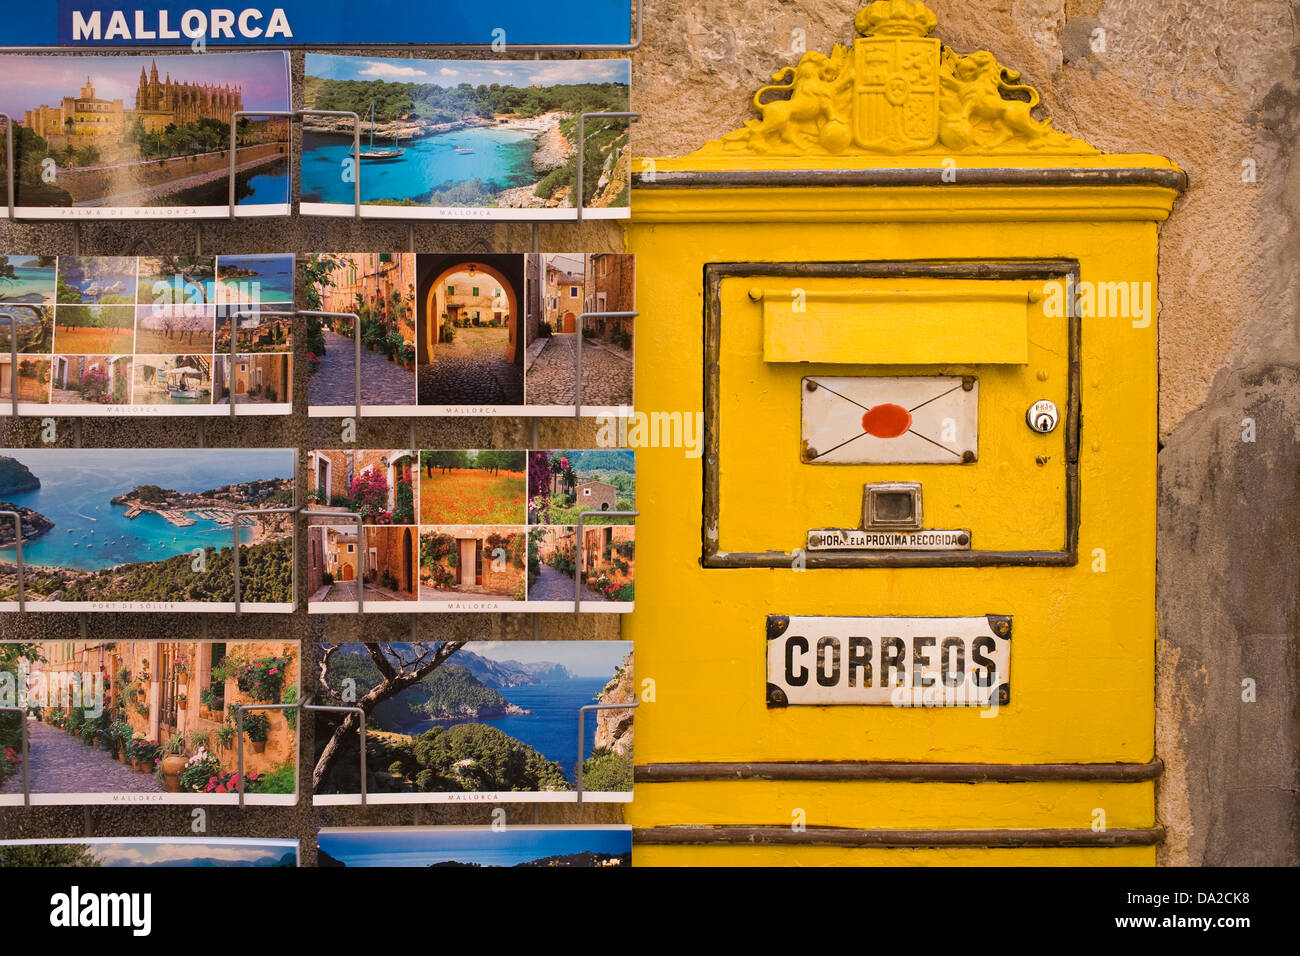 Spanish Postcards and Postbox - Stock Image